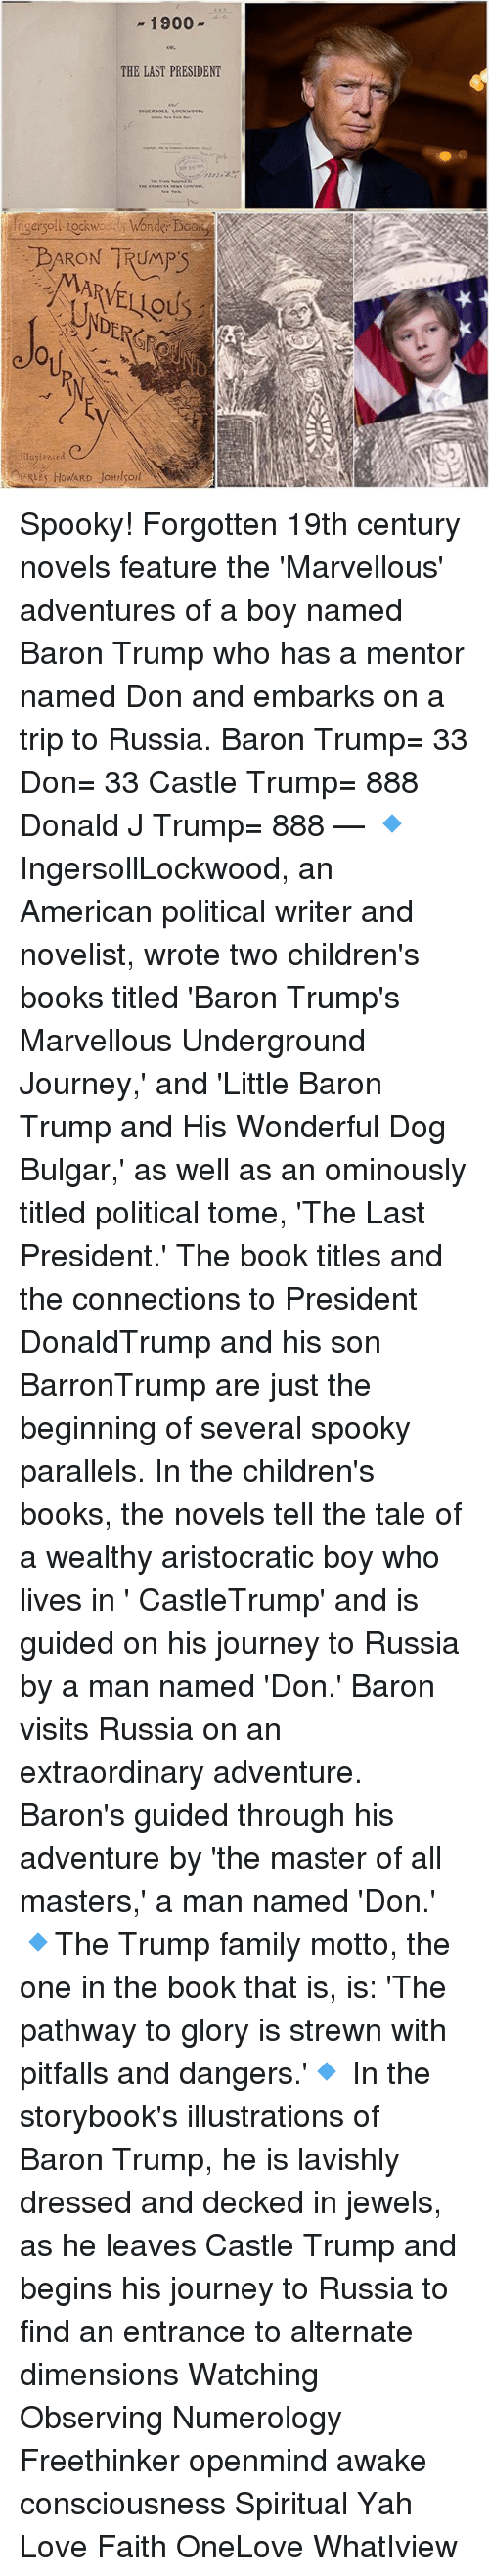 Books, Family, and Journey: 1900  ow,  THE LAST PRESIDENT  nsersoll ockwoay Wonder Book  ou  lilustrased  BRLES HoWARD JOHNSON Spooky! Forgotten 19th century novels feature the 'Marvellous' adventures of a boy named Baron Trump who has a mentor named Don and embarks on a trip to Russia. Baron Trump= 33 Don= 33 Castle Trump= 888 Donald J Trump= 888 — 🔹 IngersollLockwood, an American political writer and novelist, wrote two children's books titled 'Baron Trump's Marvellous Underground Journey,' and 'Little Baron Trump and His Wonderful Dog Bulgar,' as well as an ominously titled political tome, 'The Last President.' The book titles and the connections to President DonaldTrump and his son BarronTrump are just the beginning of several spooky parallels. In the children's books, the novels tell the tale of a wealthy aristocratic boy who lives in ' CastleTrump' and is guided on his journey to Russia by a man named 'Don.' Baron visits Russia on an extraordinary adventure. Baron's guided through his adventure by 'the master of all masters,' a man named 'Don.' 🔹The Trump family motto, the one in the book that is, is: 'The pathway to glory is strewn with pitfalls and dangers.'🔹 In the storybook's illustrations of Baron Trump, he is lavishly dressed and decked in jewels, as he leaves Castle Trump and begins his journey to Russia to find an entrance to alternate dimensions Watching Observing Numerology Freethinker openmind awake consciousness Spiritual Yah Love Faith OneLove WhatIview